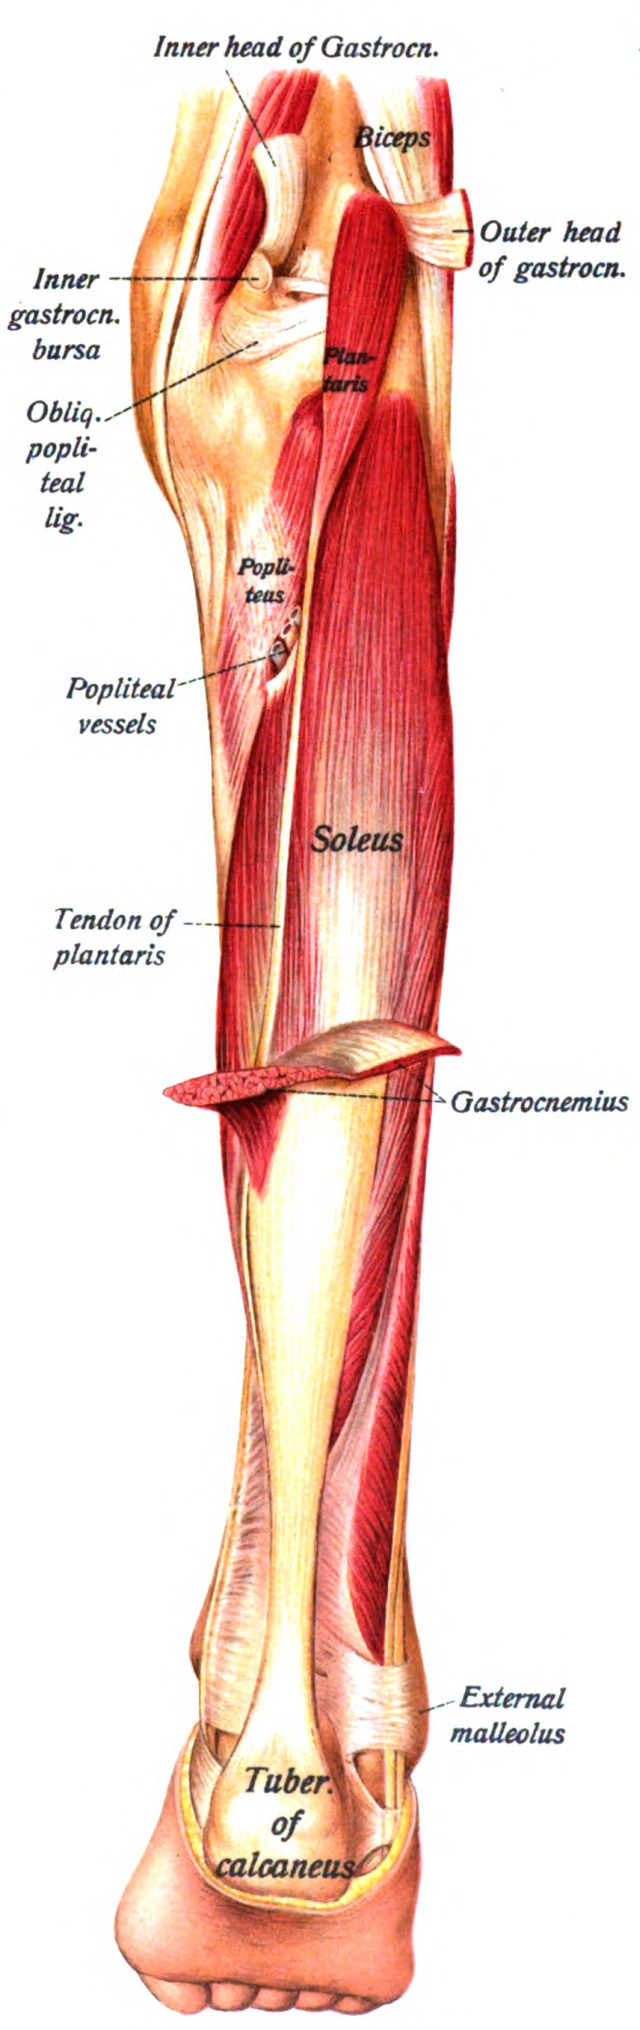 gastrocnemius muscle - wikiwand, Cephalic vein